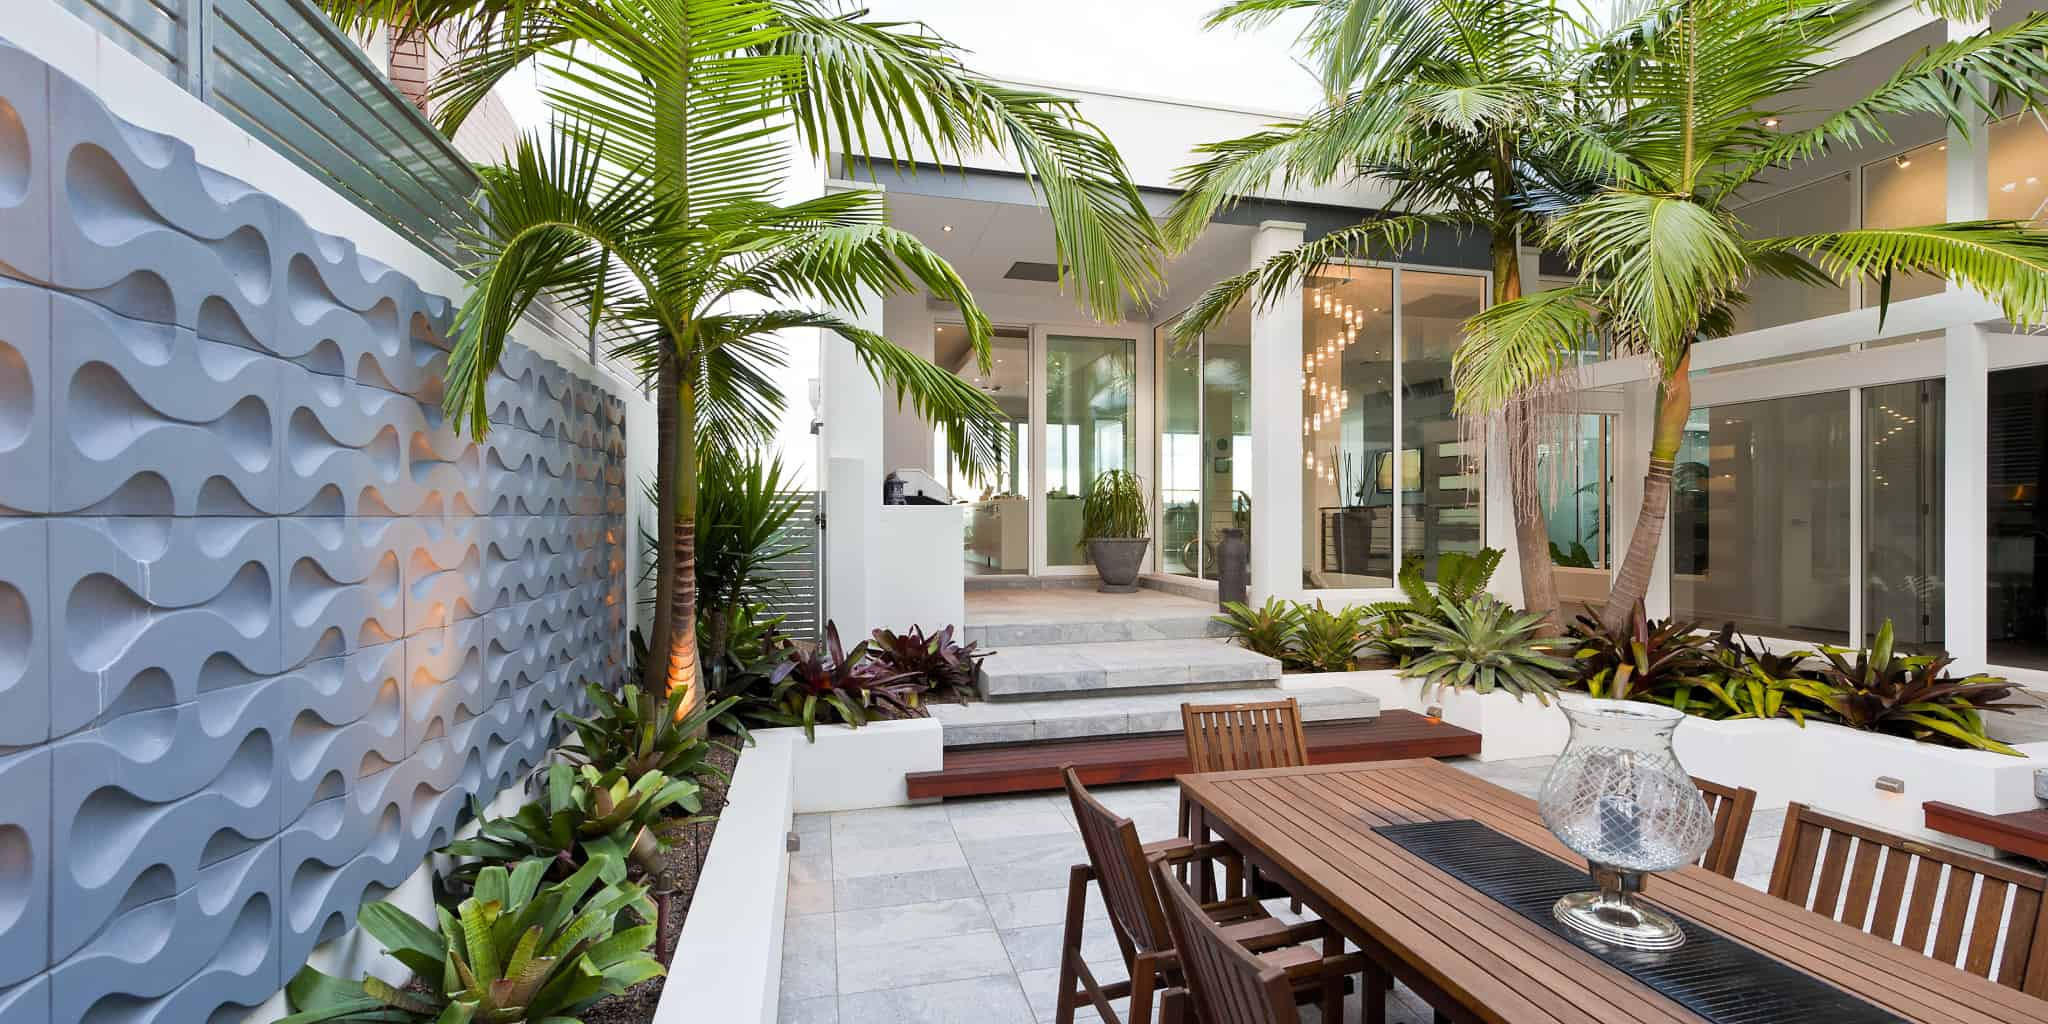 Stunning Sunken Courtyard Design For Coastal Oasis